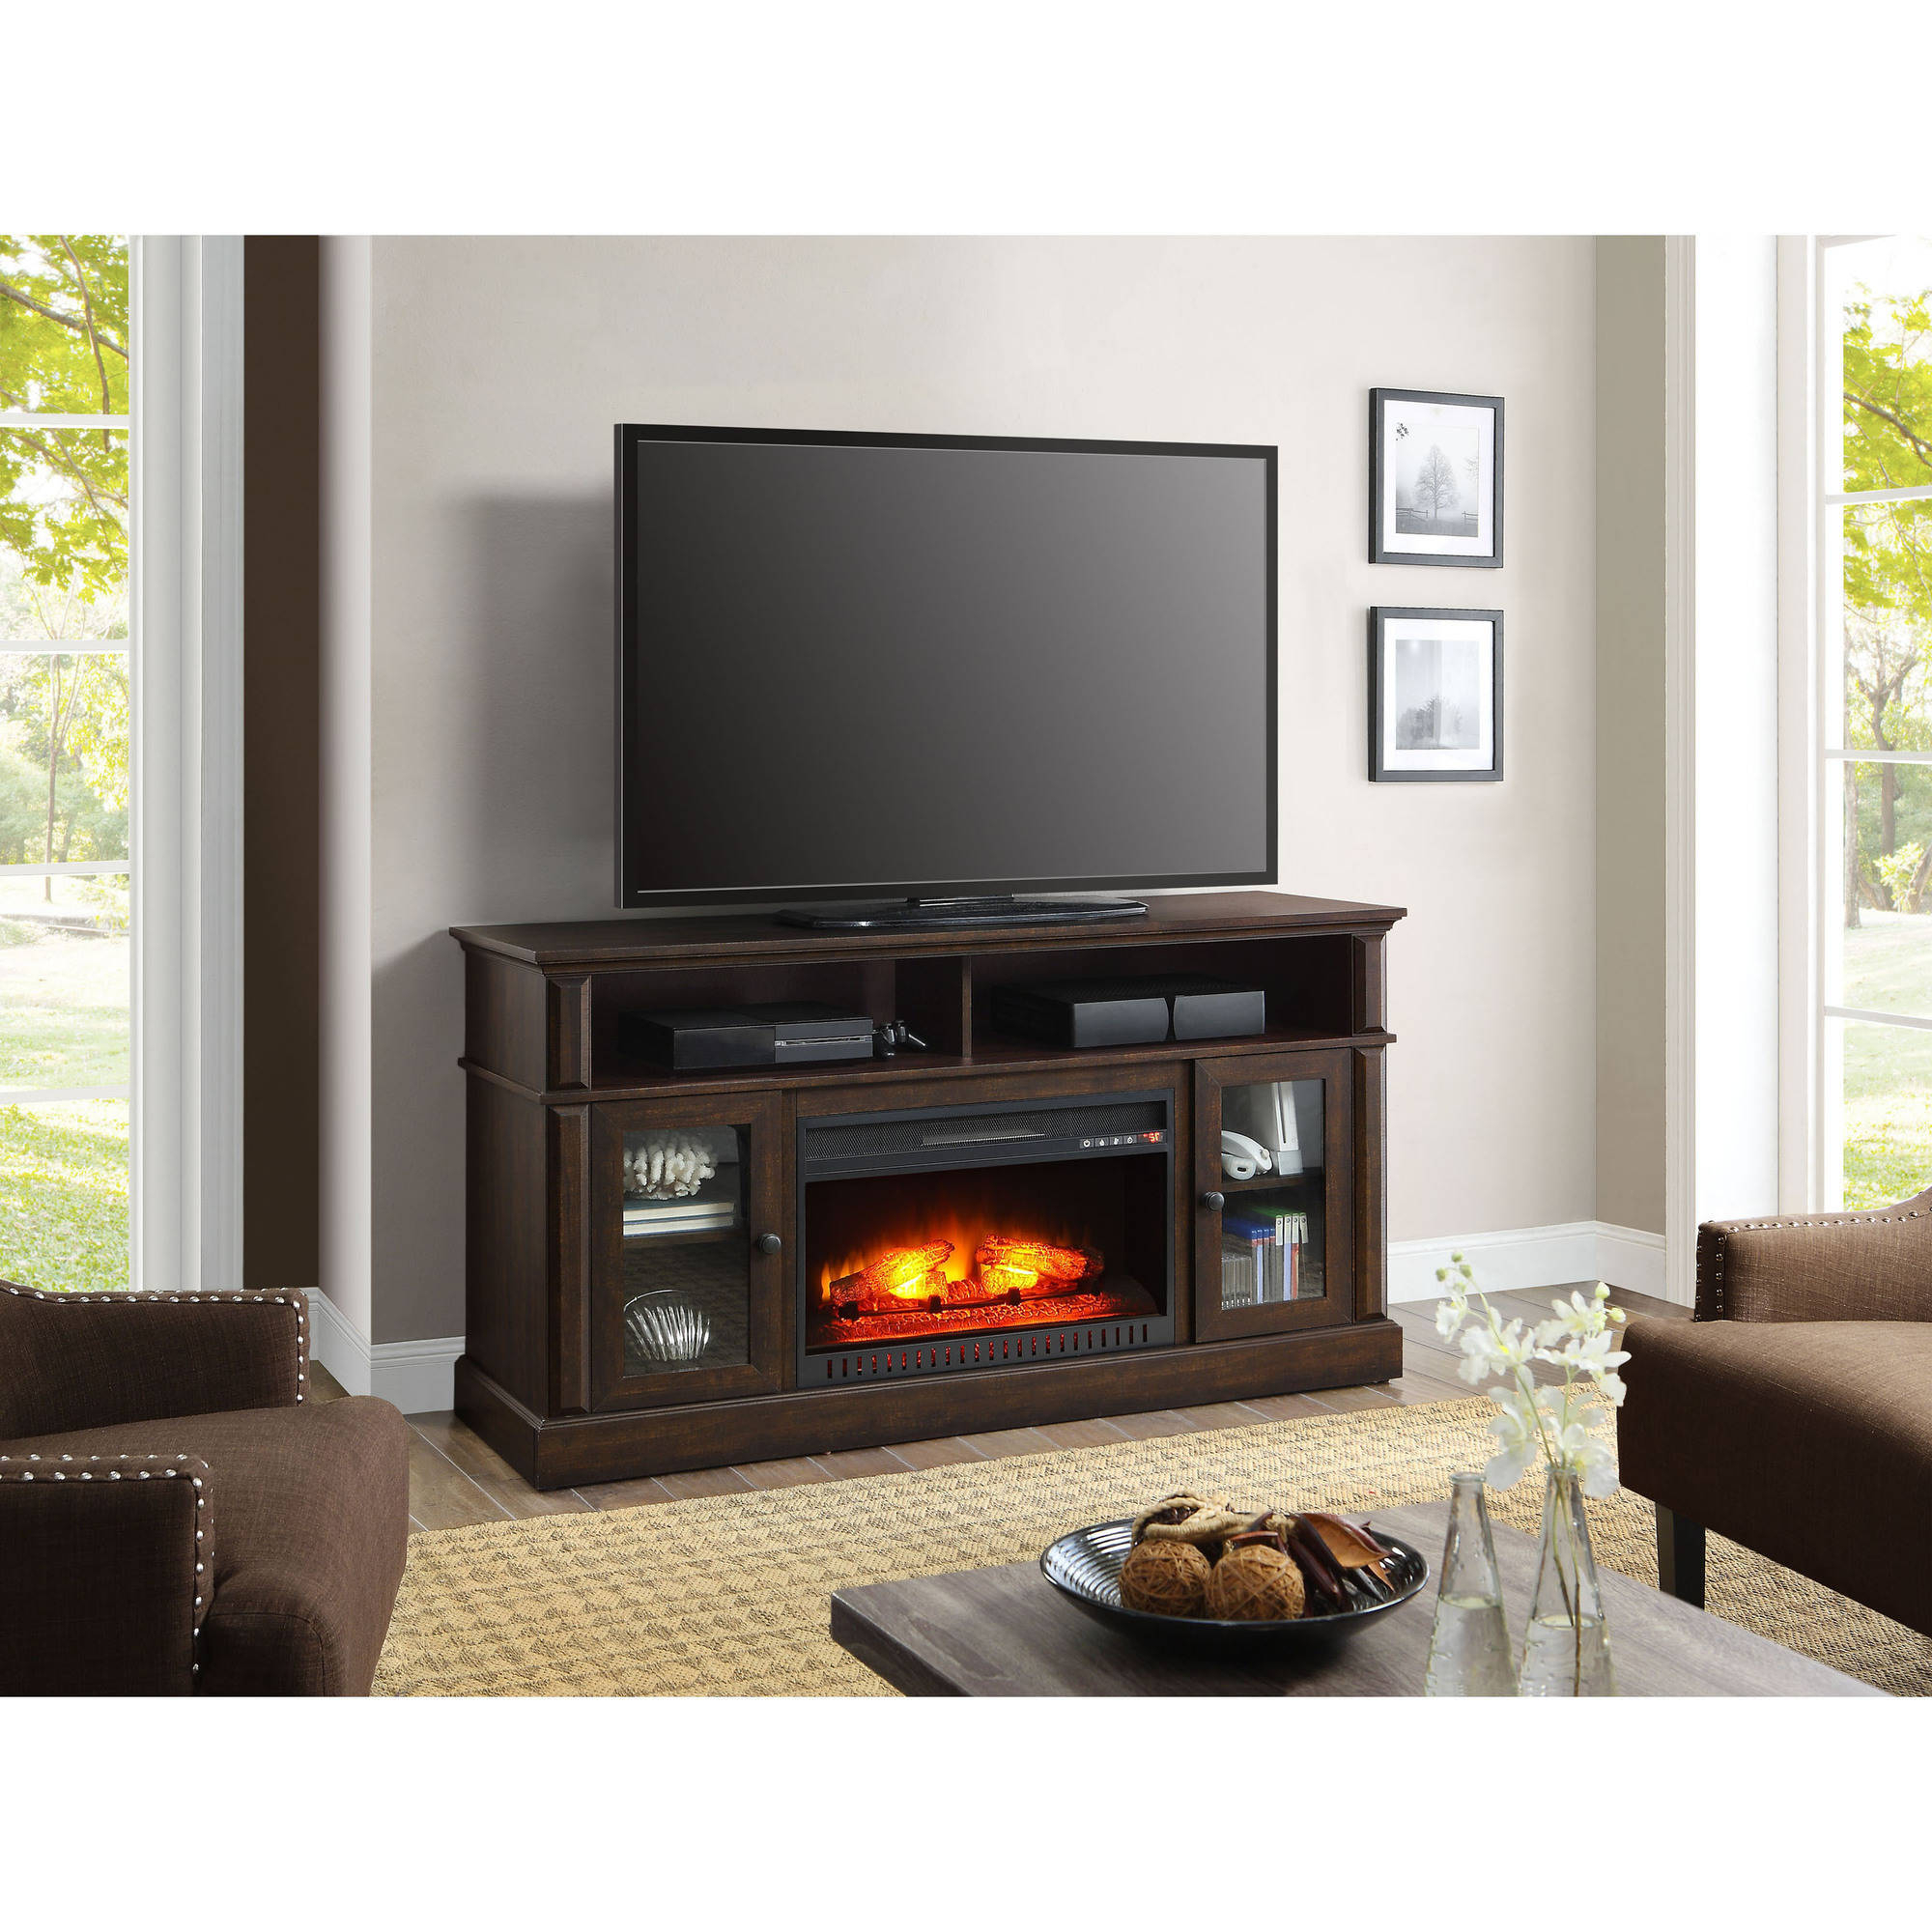 Cabinet Tv Stands Pertaining To Well Liked Details About Fireplace Tv Stand Rustic Media Center Electric Heater Rustic Credenza Cabinet (View 11 of 20)